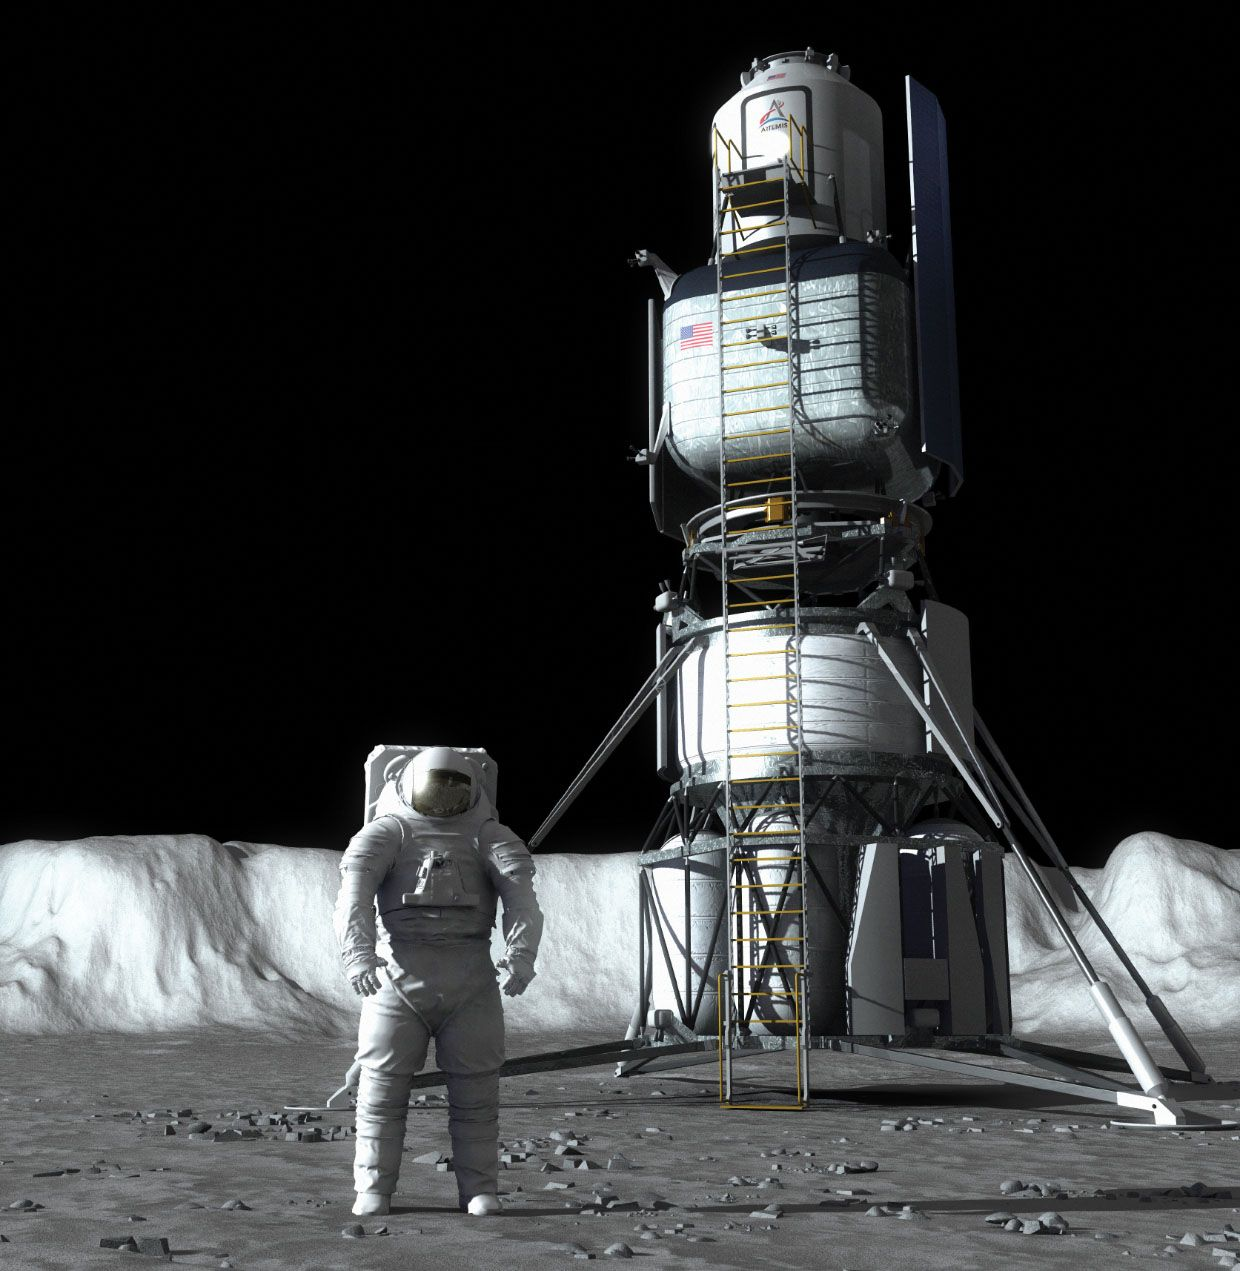 Image of an astronaut on the moon next to a lander.